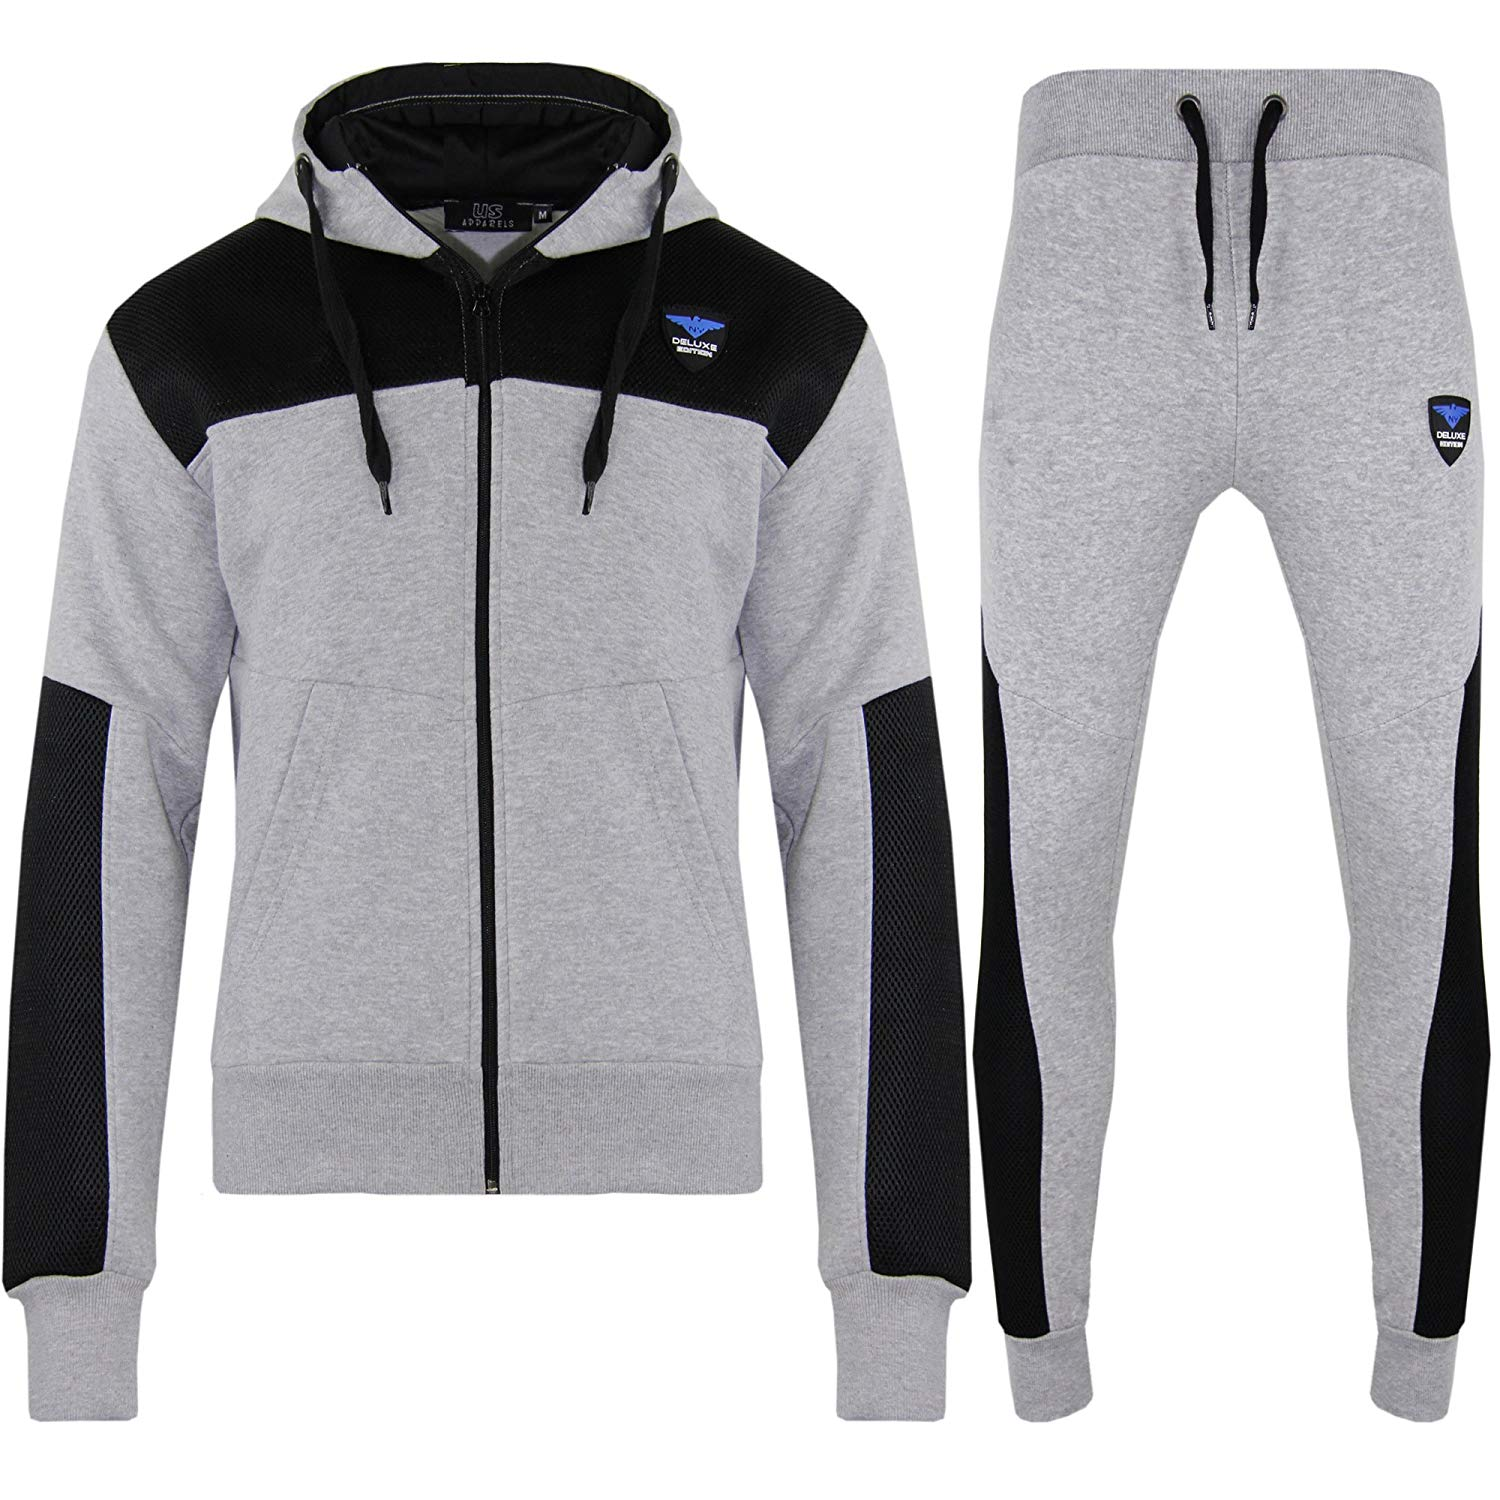 92736c579 Cheap Kids Tracksuit Tops